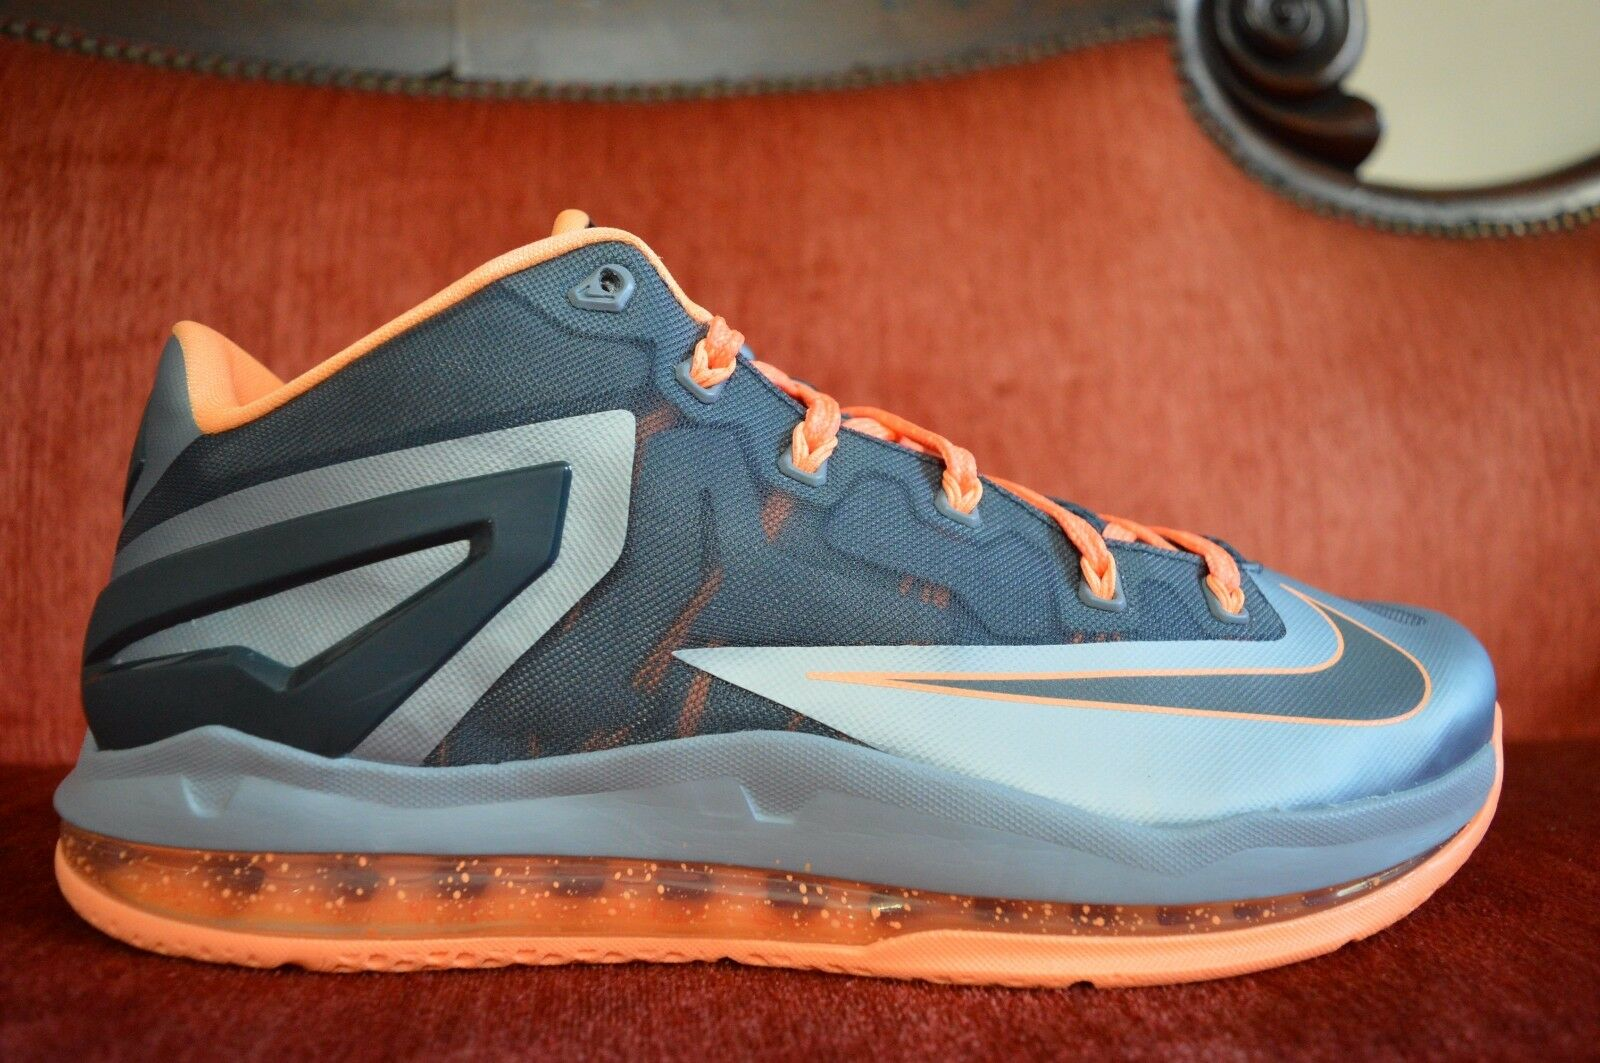 NEW  NIKE Lebron XI Low Lava Mango Men's Basketball shoes 642849 002 Size 10.5